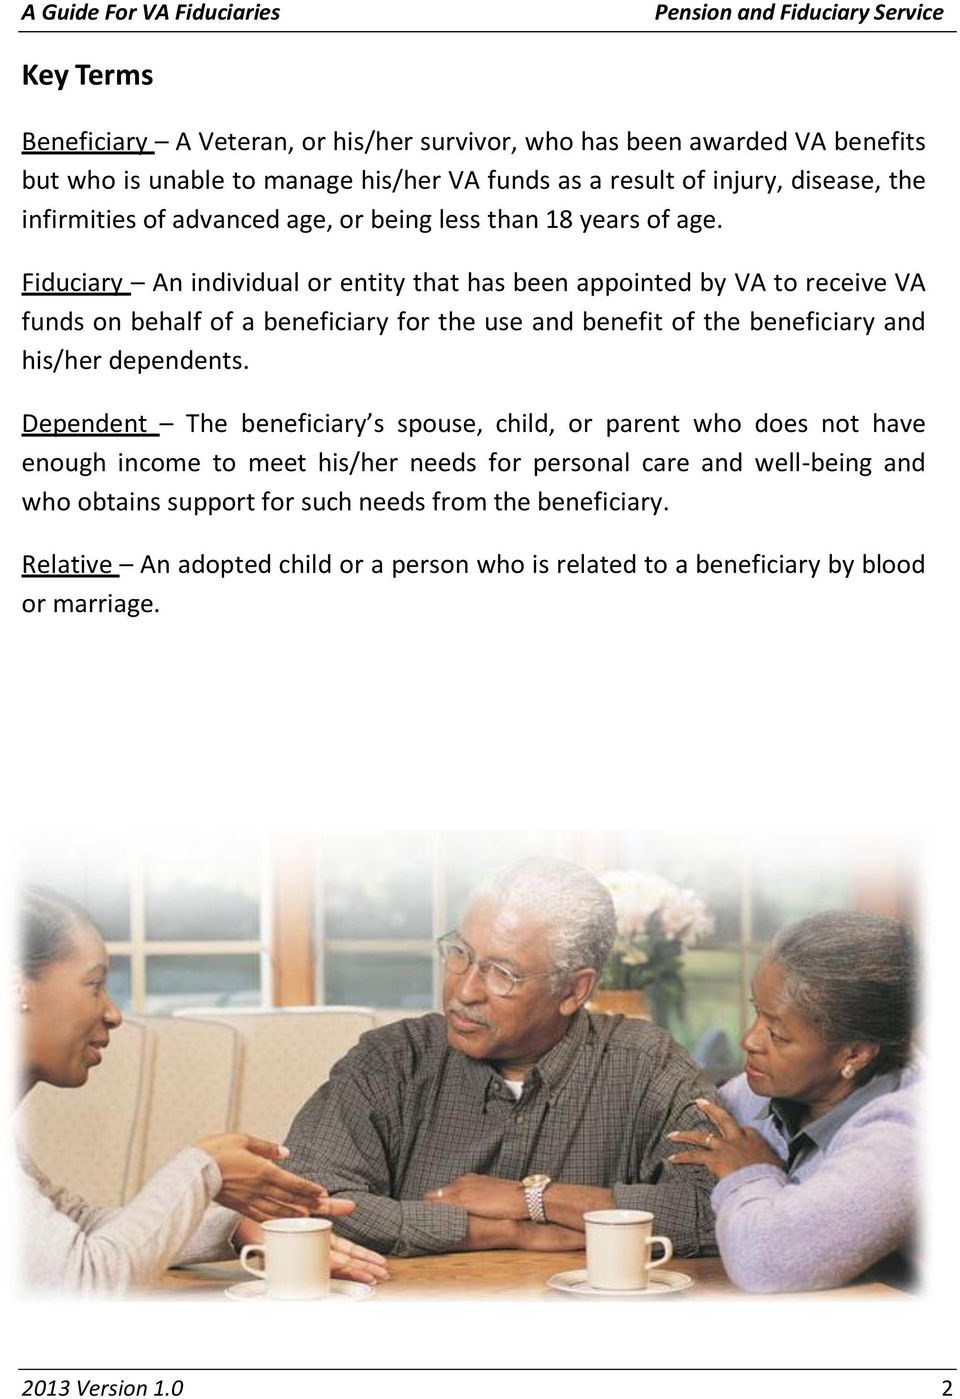 Fiduciary An individual or entity that has been appointed by VA to receive VA funds on behalf of a beneficiary for the use and benefit of the beneficiary and his/her dependents.